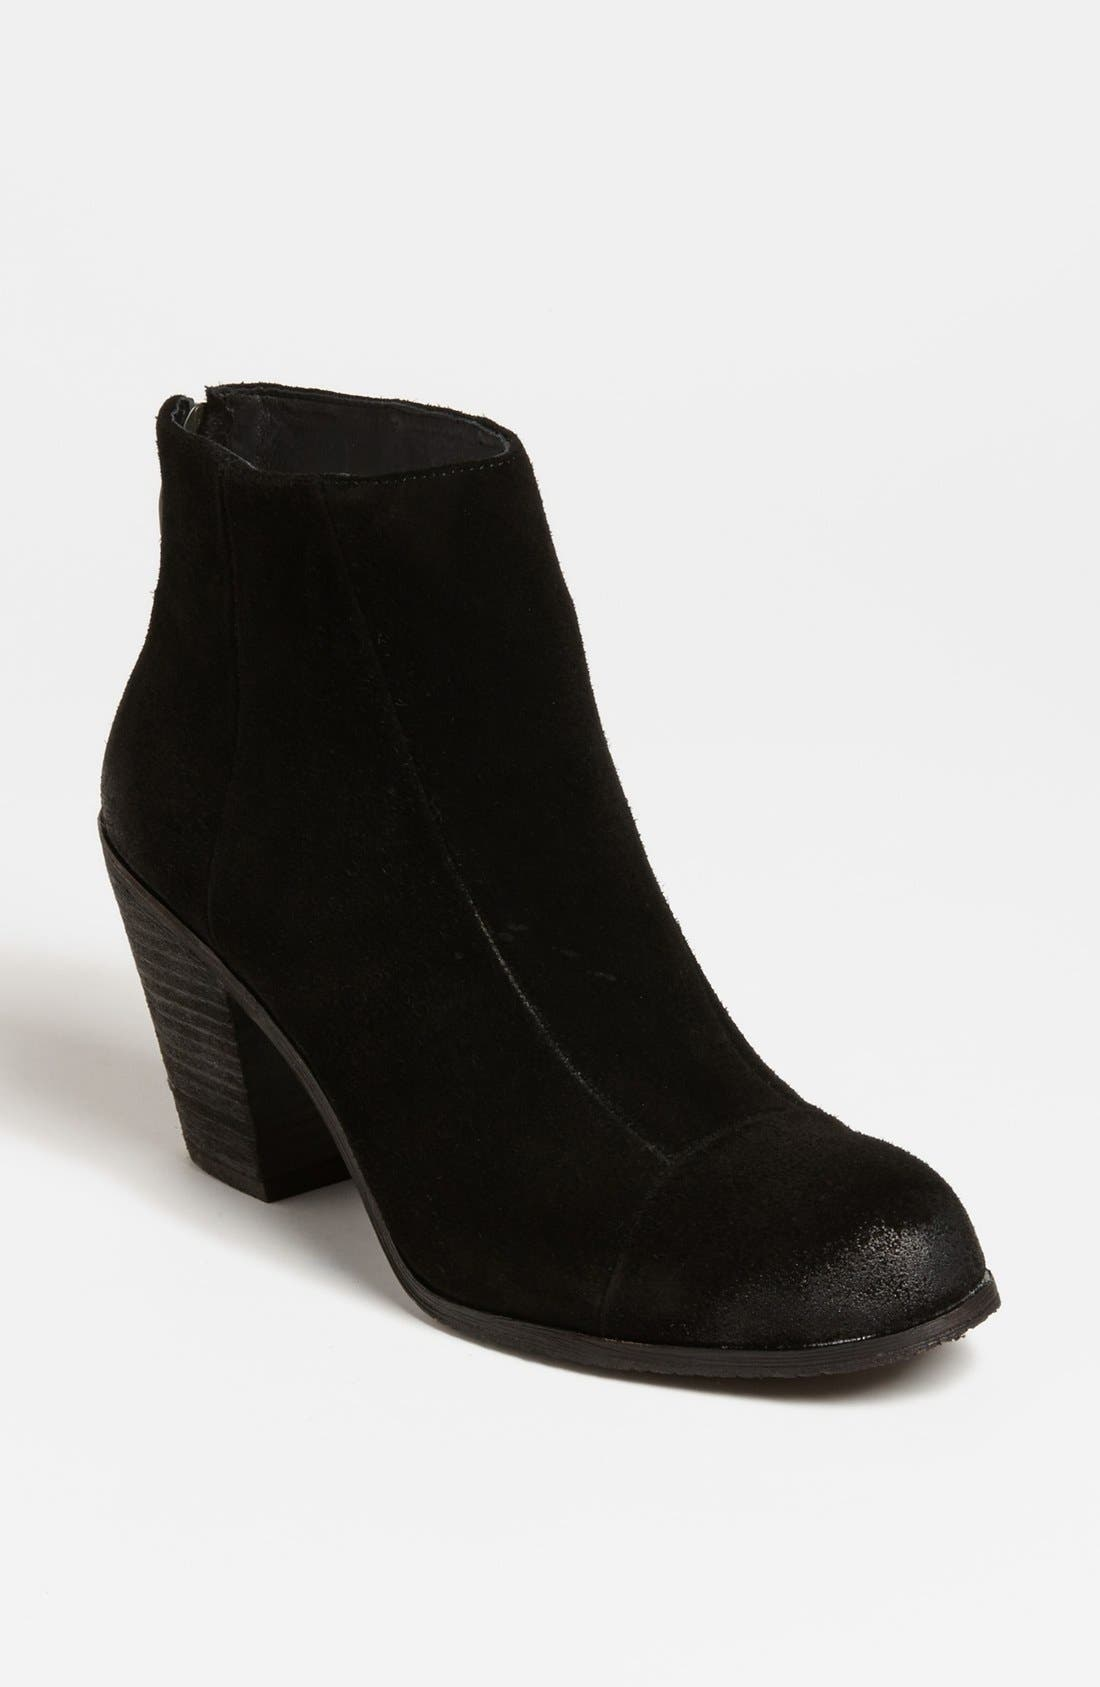 VINCE CAMUTO 'Grayson' Bootie, Main, color, 001